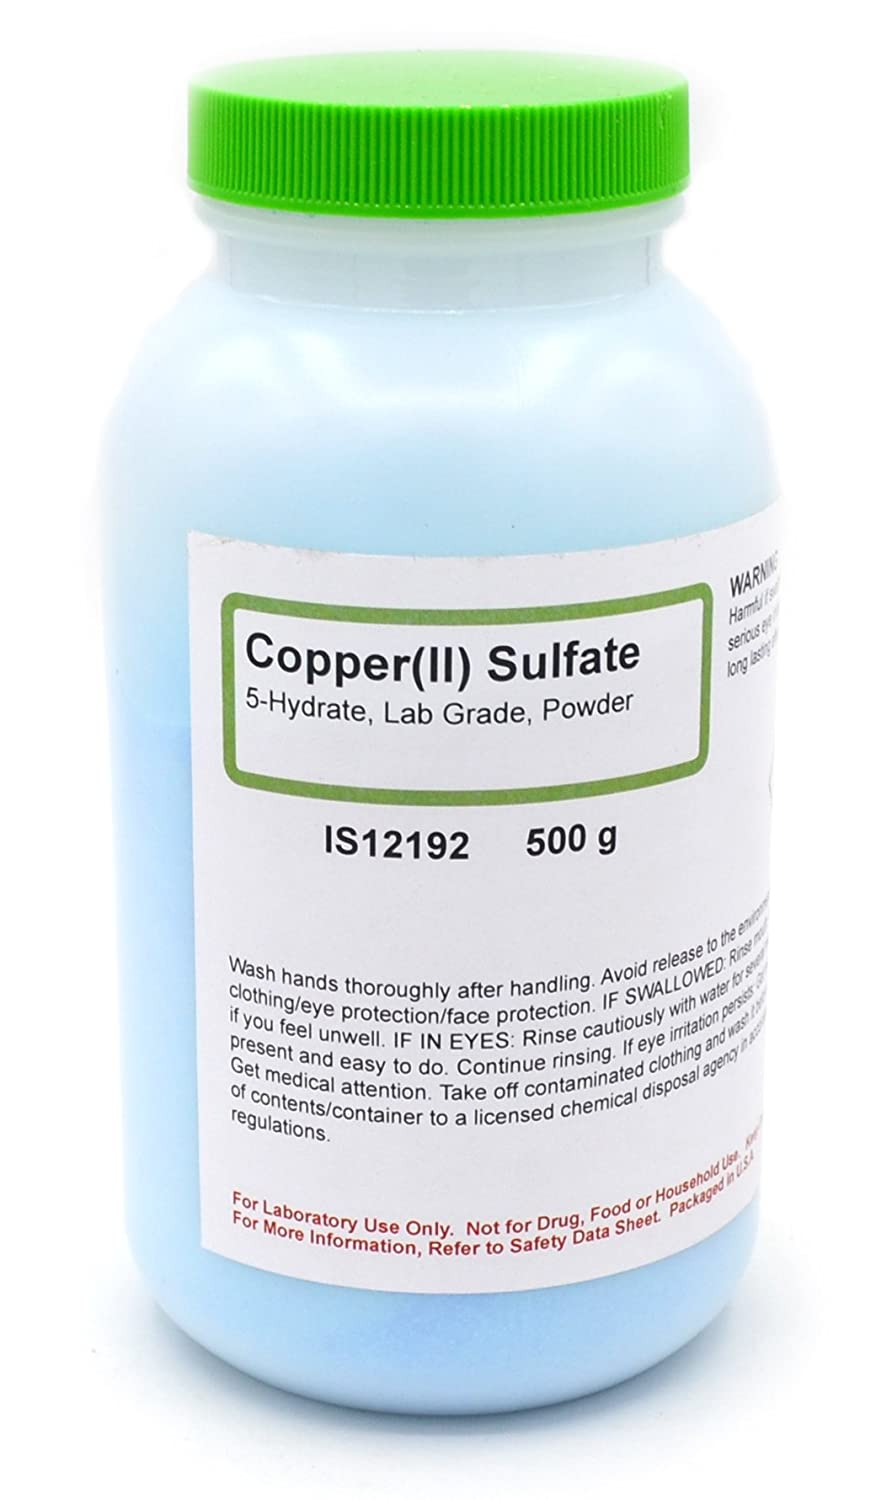 Laboratory-Grade Copper (II) Sulfate 5-Hydrate Powder, 500g - The Curated Chemical Collection